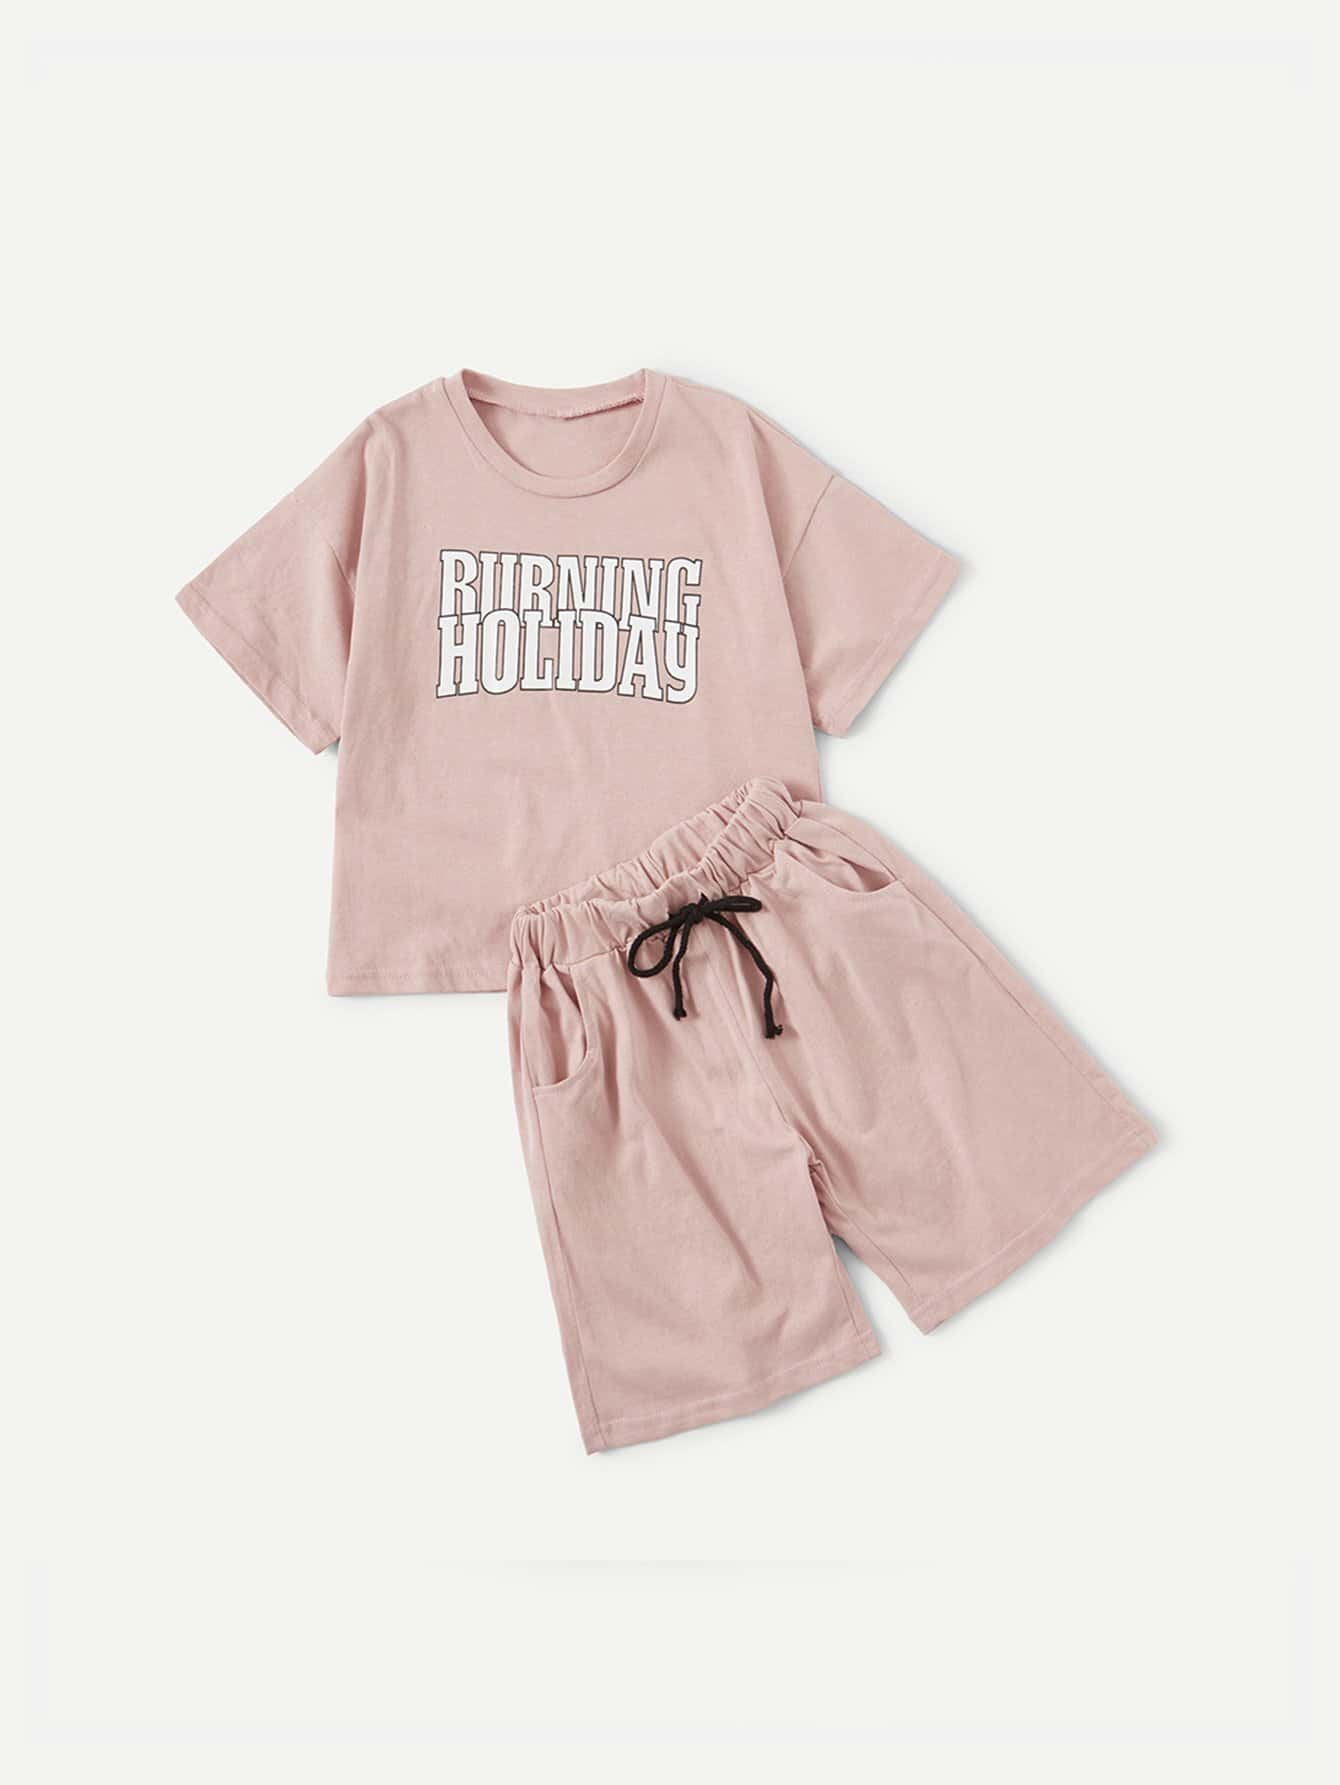 Kids Letter Print Tee With Drawstring Waist Shorts letter print hooded tee with shorts